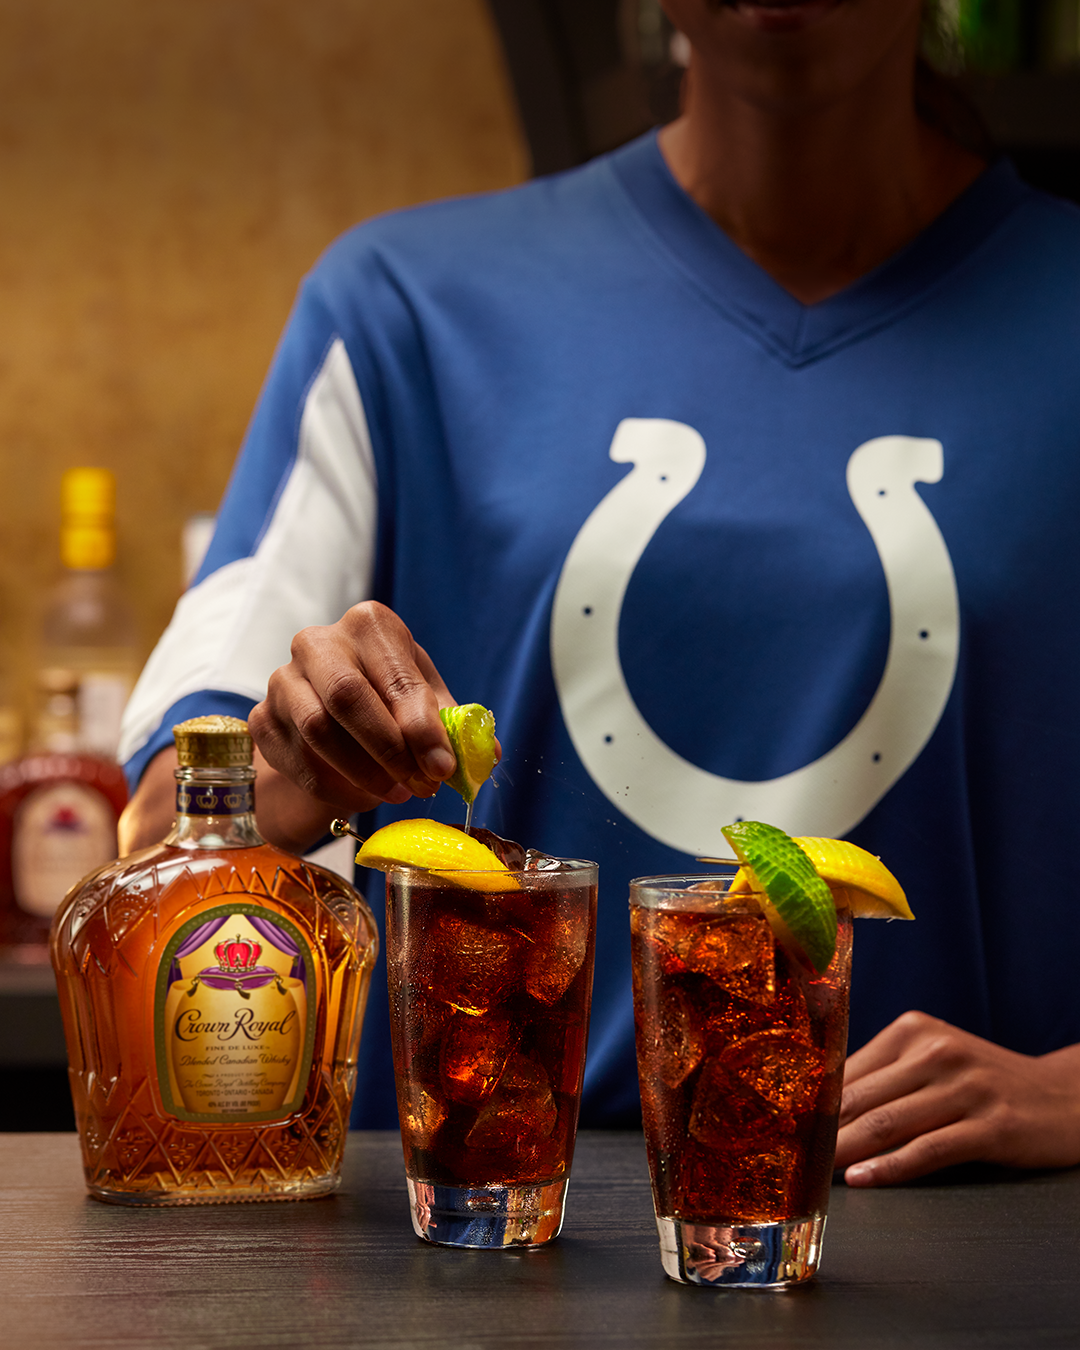 Indianapolis Colts (Crown and Cola) with a bottle of Crown Royal Deluxe